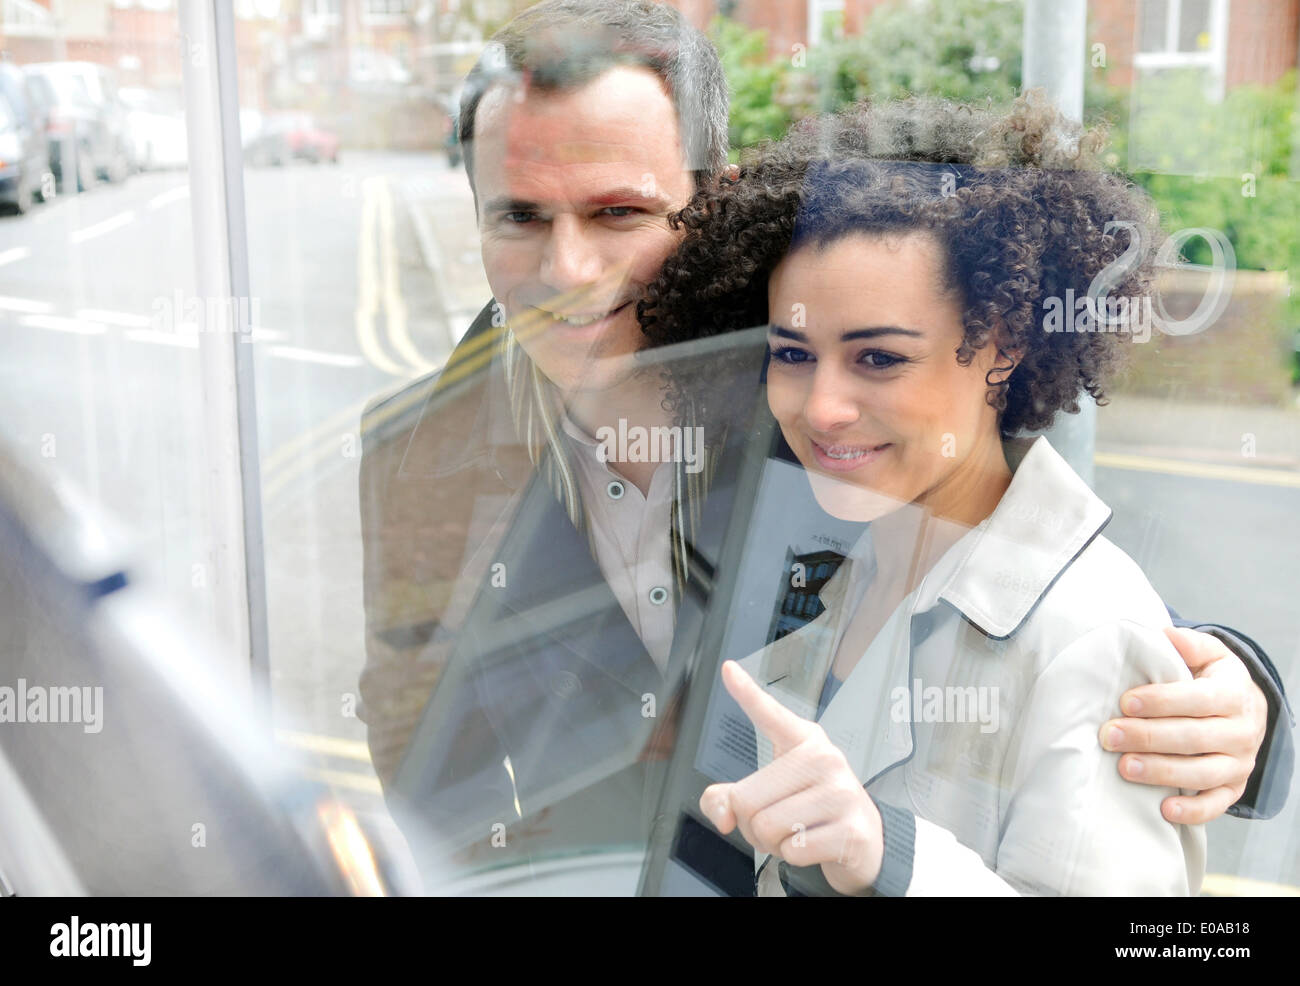 Couple window shopping, young woman pointing - Stock Image